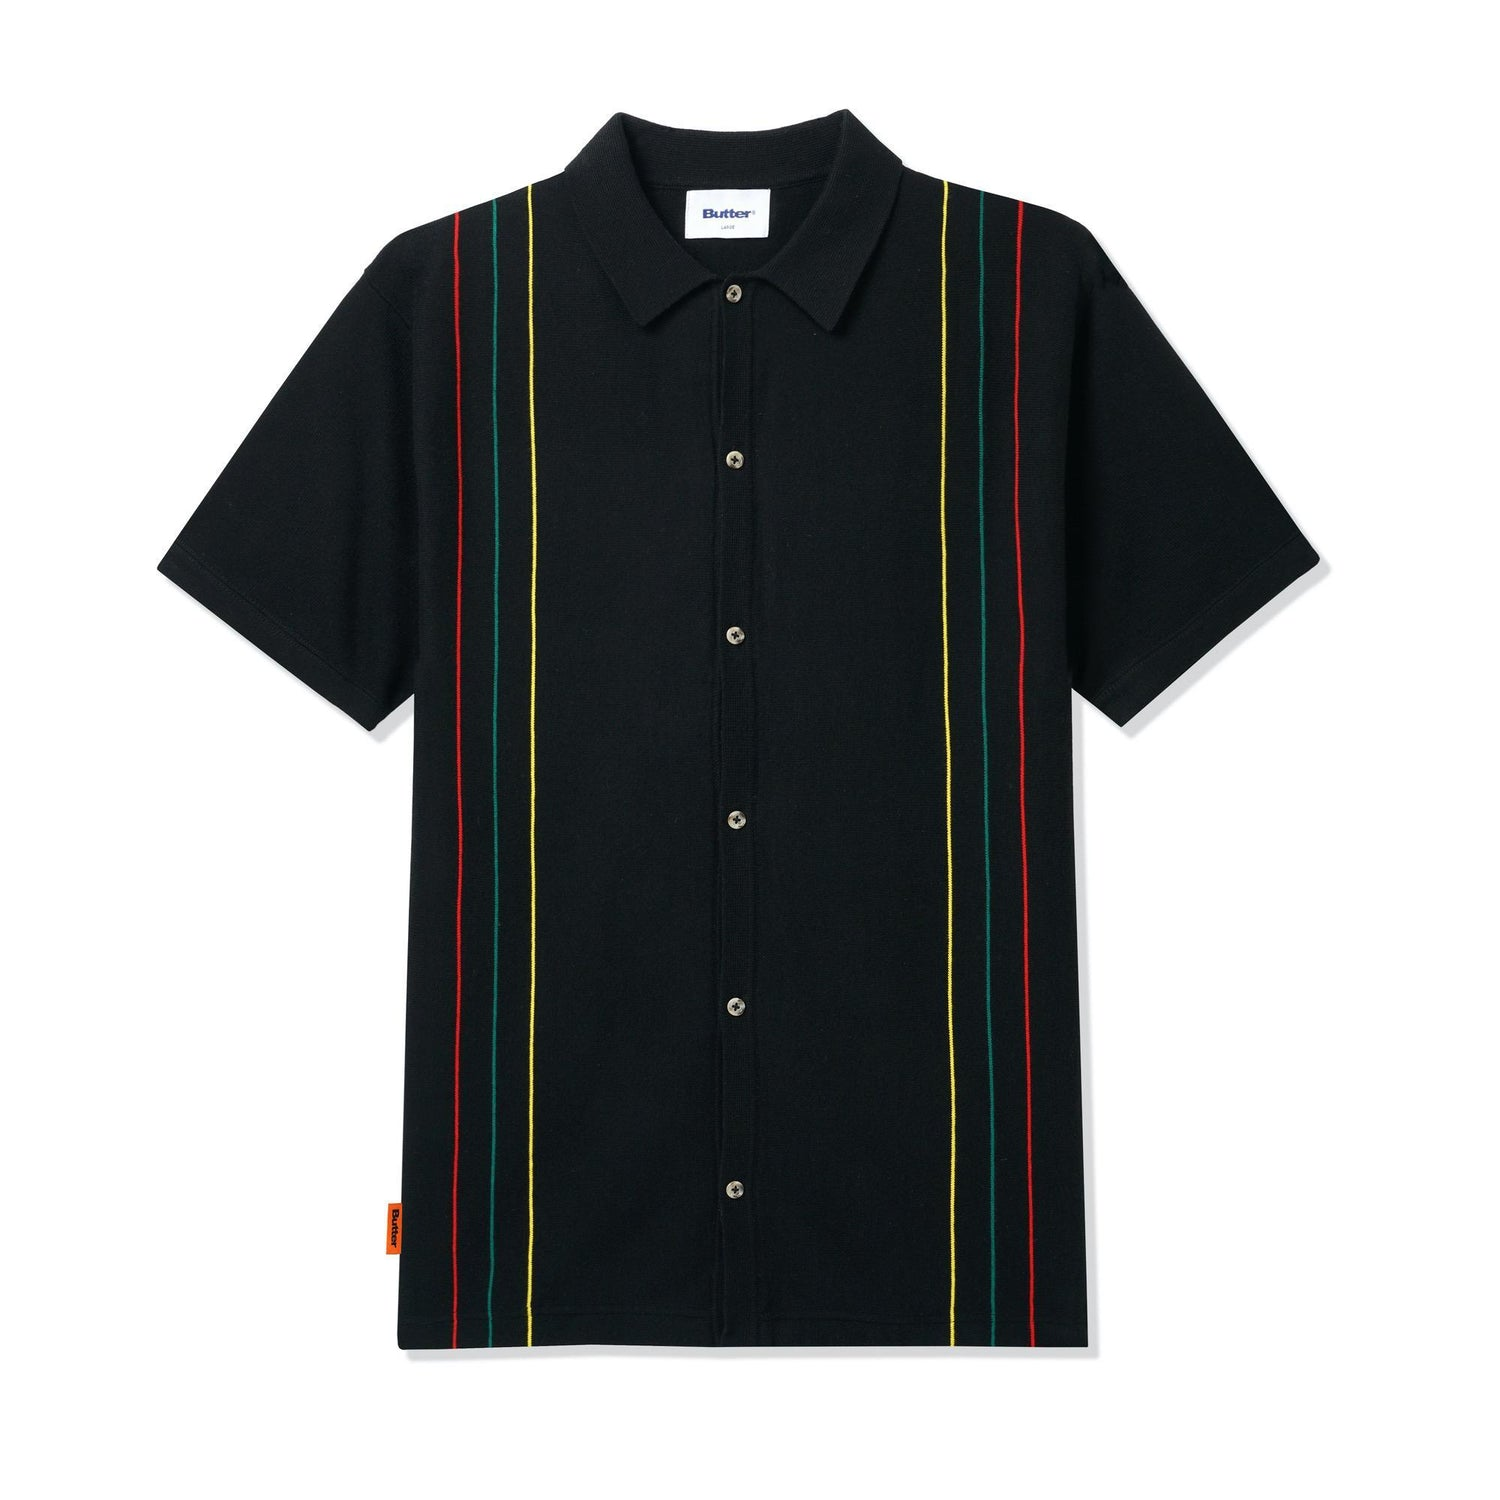 Stripe Knit Shirt, Black